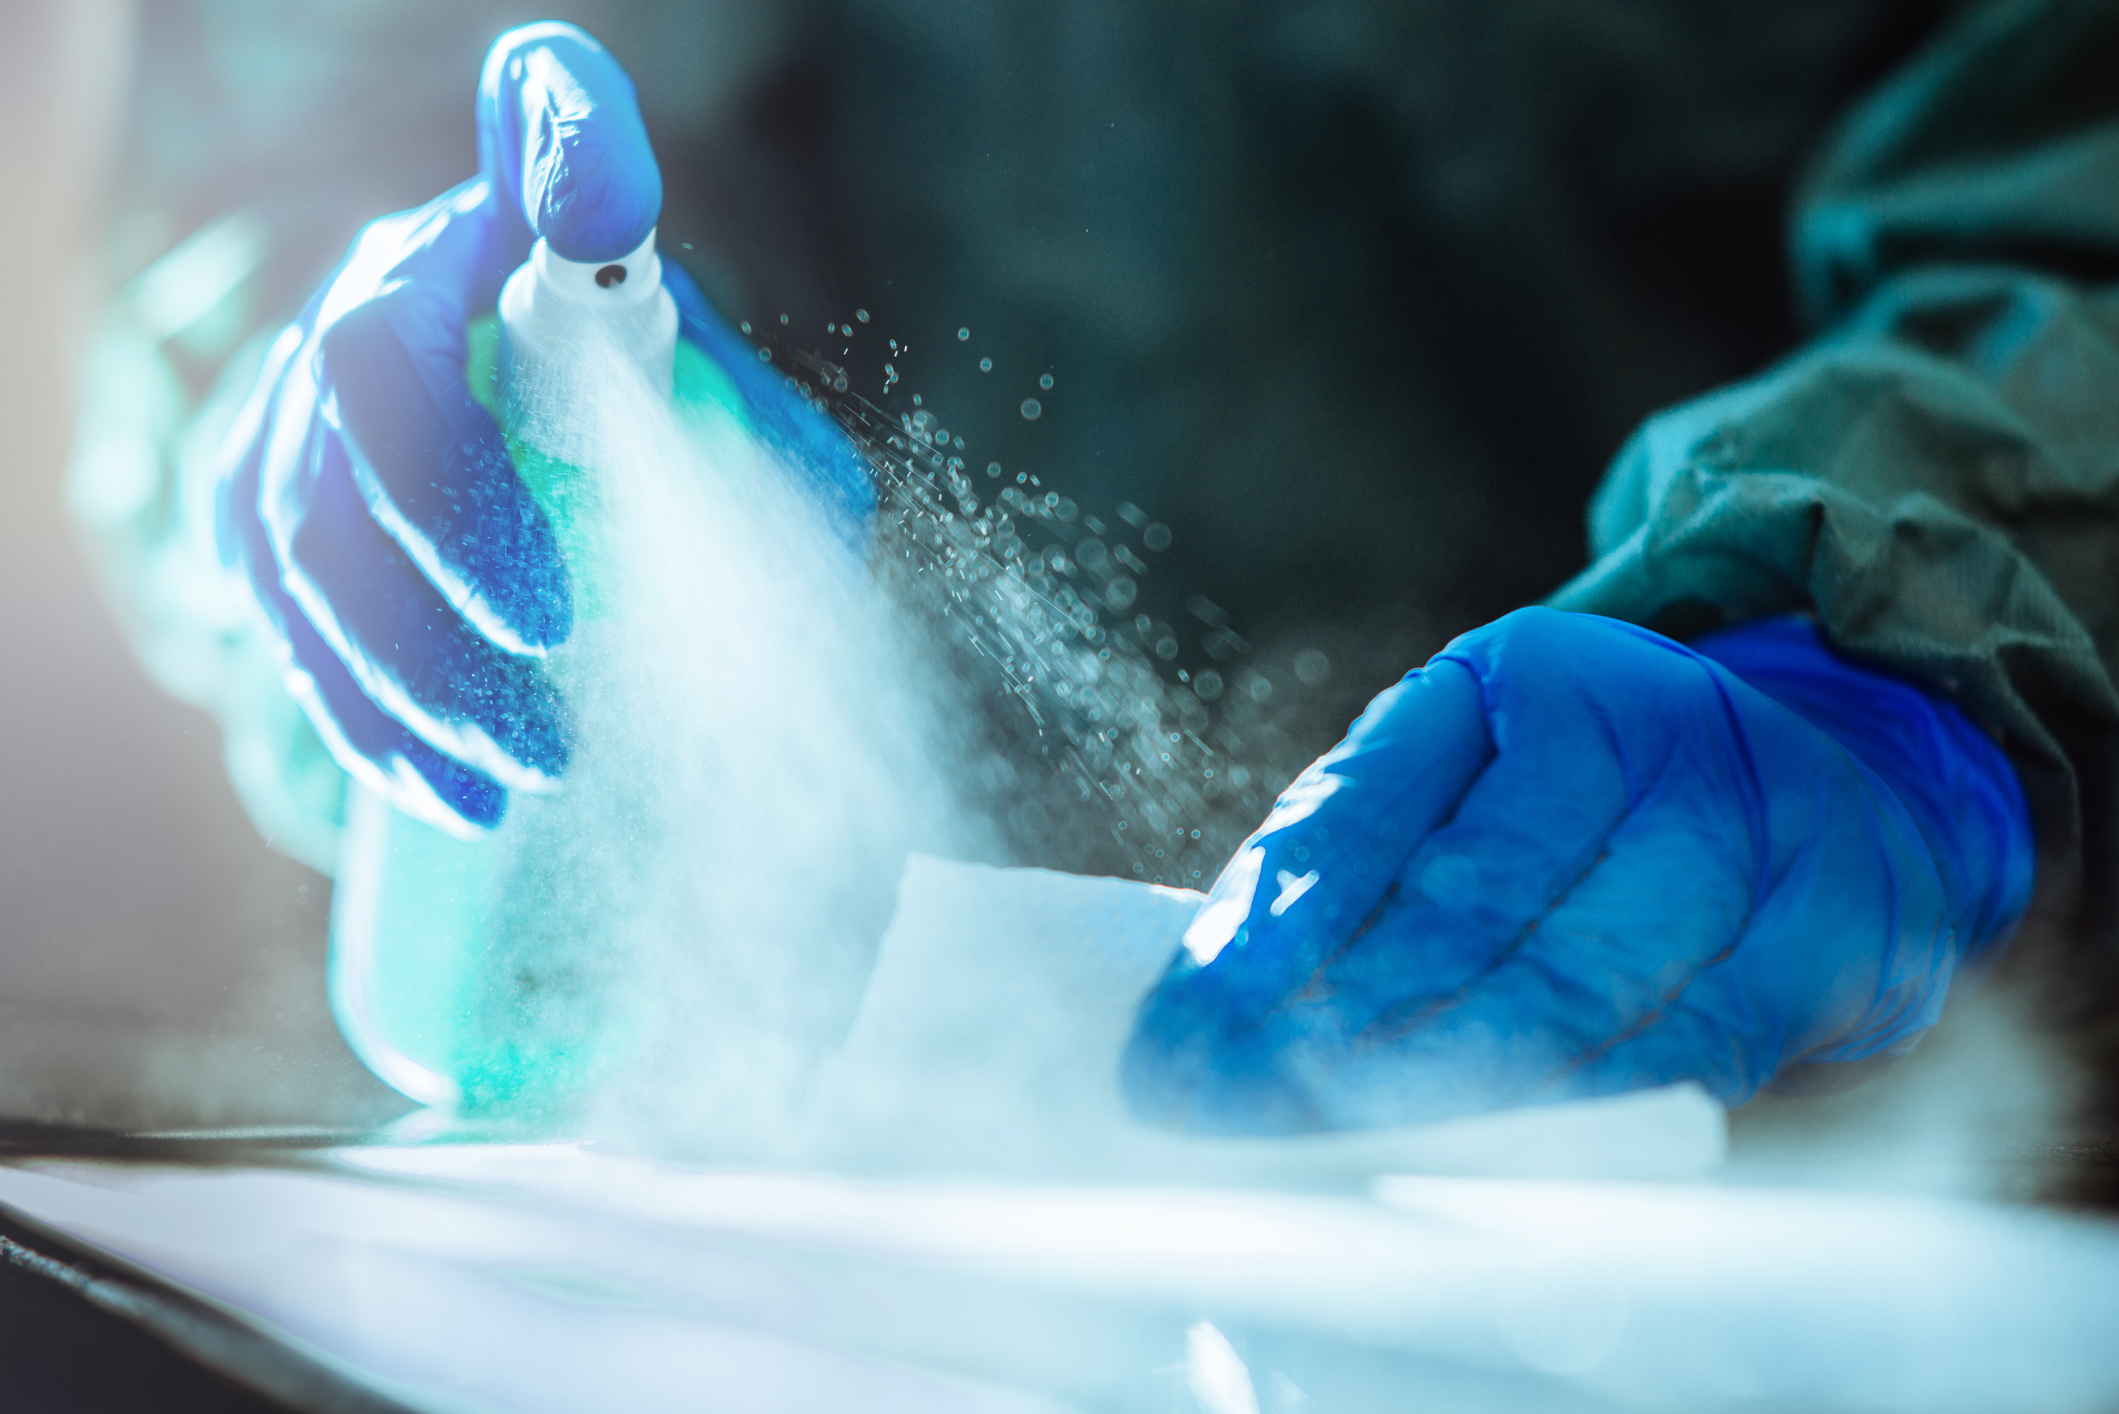 Applying UV Light to Common Disinfectants Makes Them Safer to Use